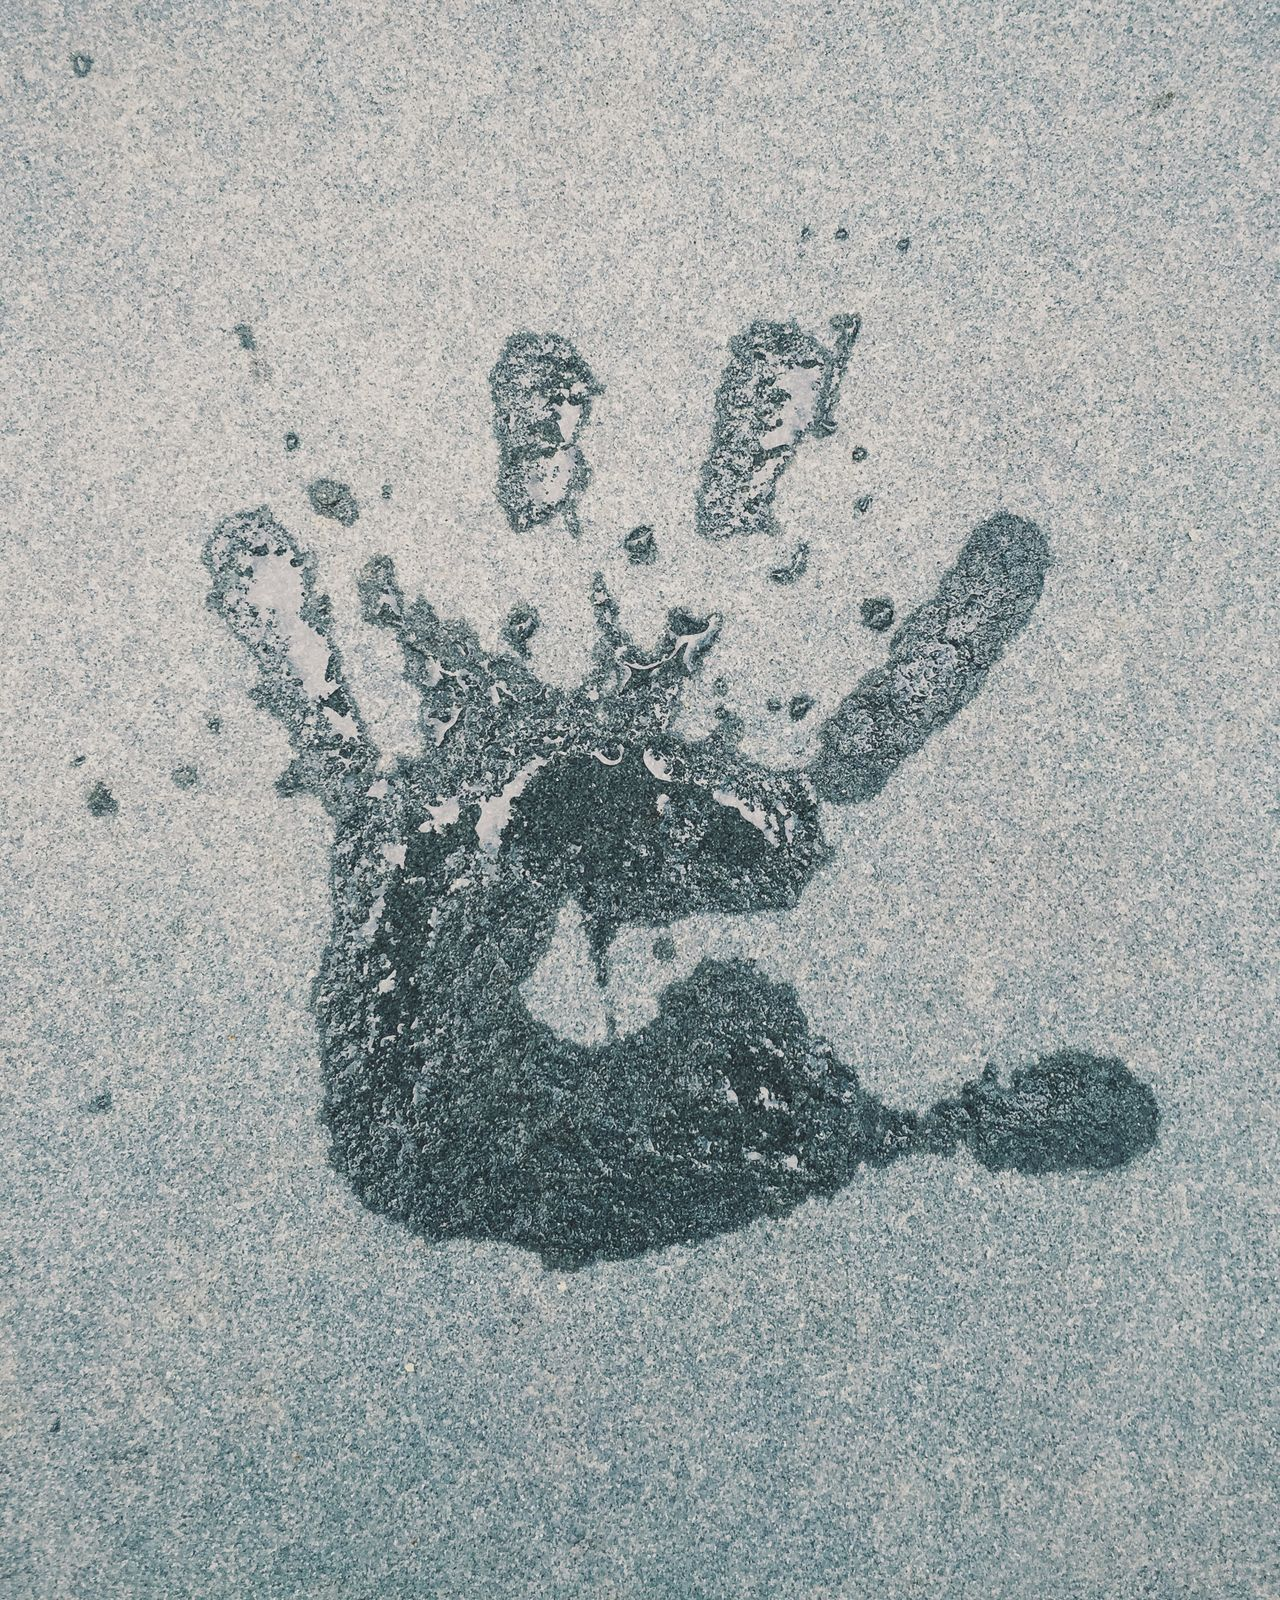 Handprint Water Wet Slash  Splatter Five Fingers Concrete